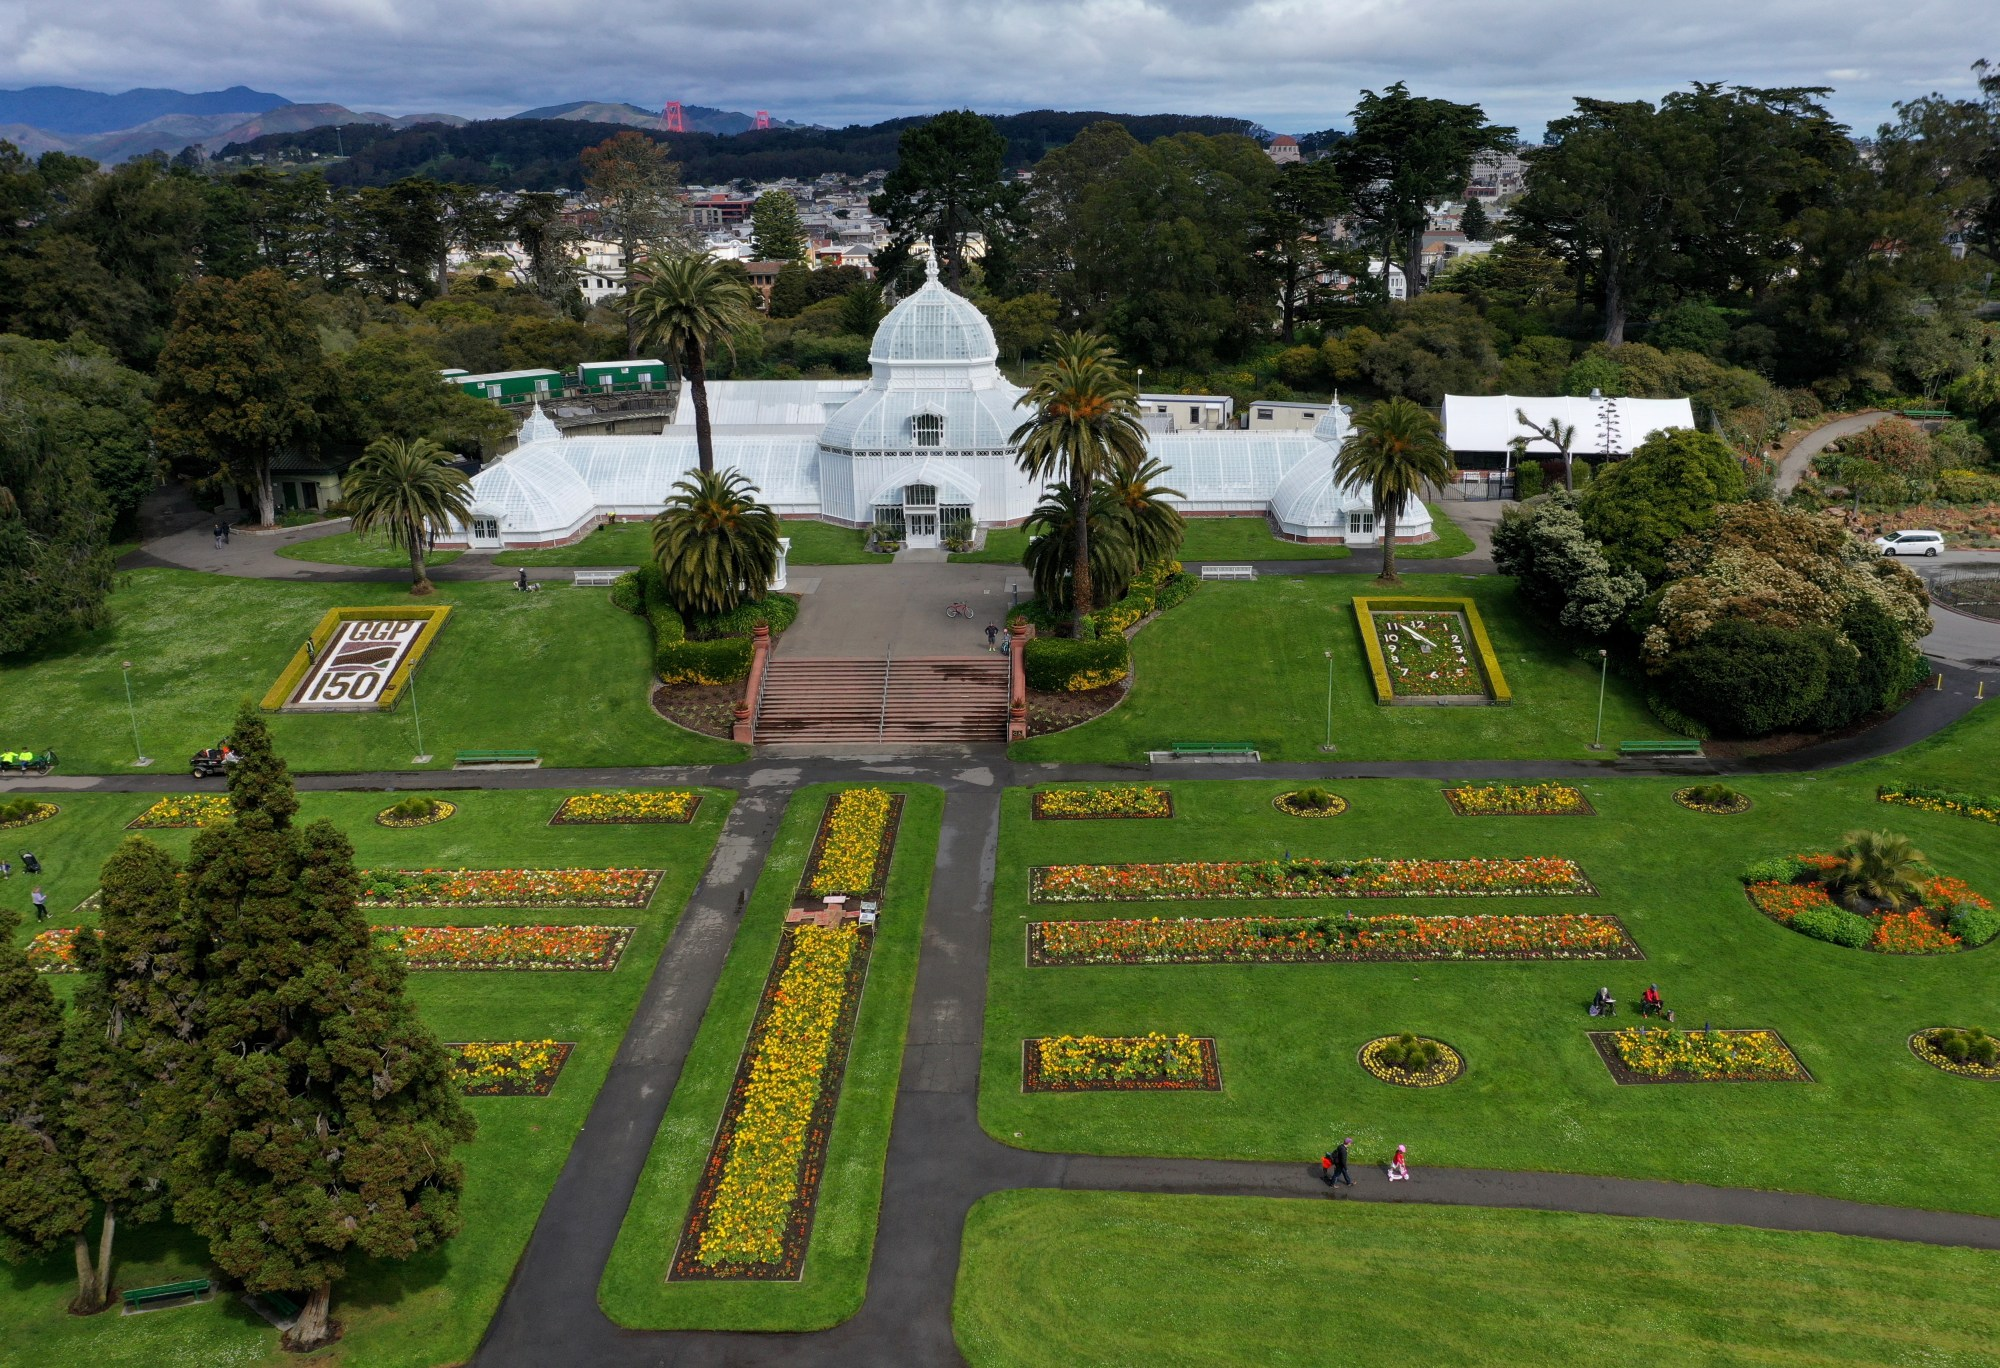 An aerial drone view of the nearly empty grounds of the Conservatory of Flowers in Golden Gate Park on March 30, 2020, in San Francisco. (Justin Sullivan/Getty Images)